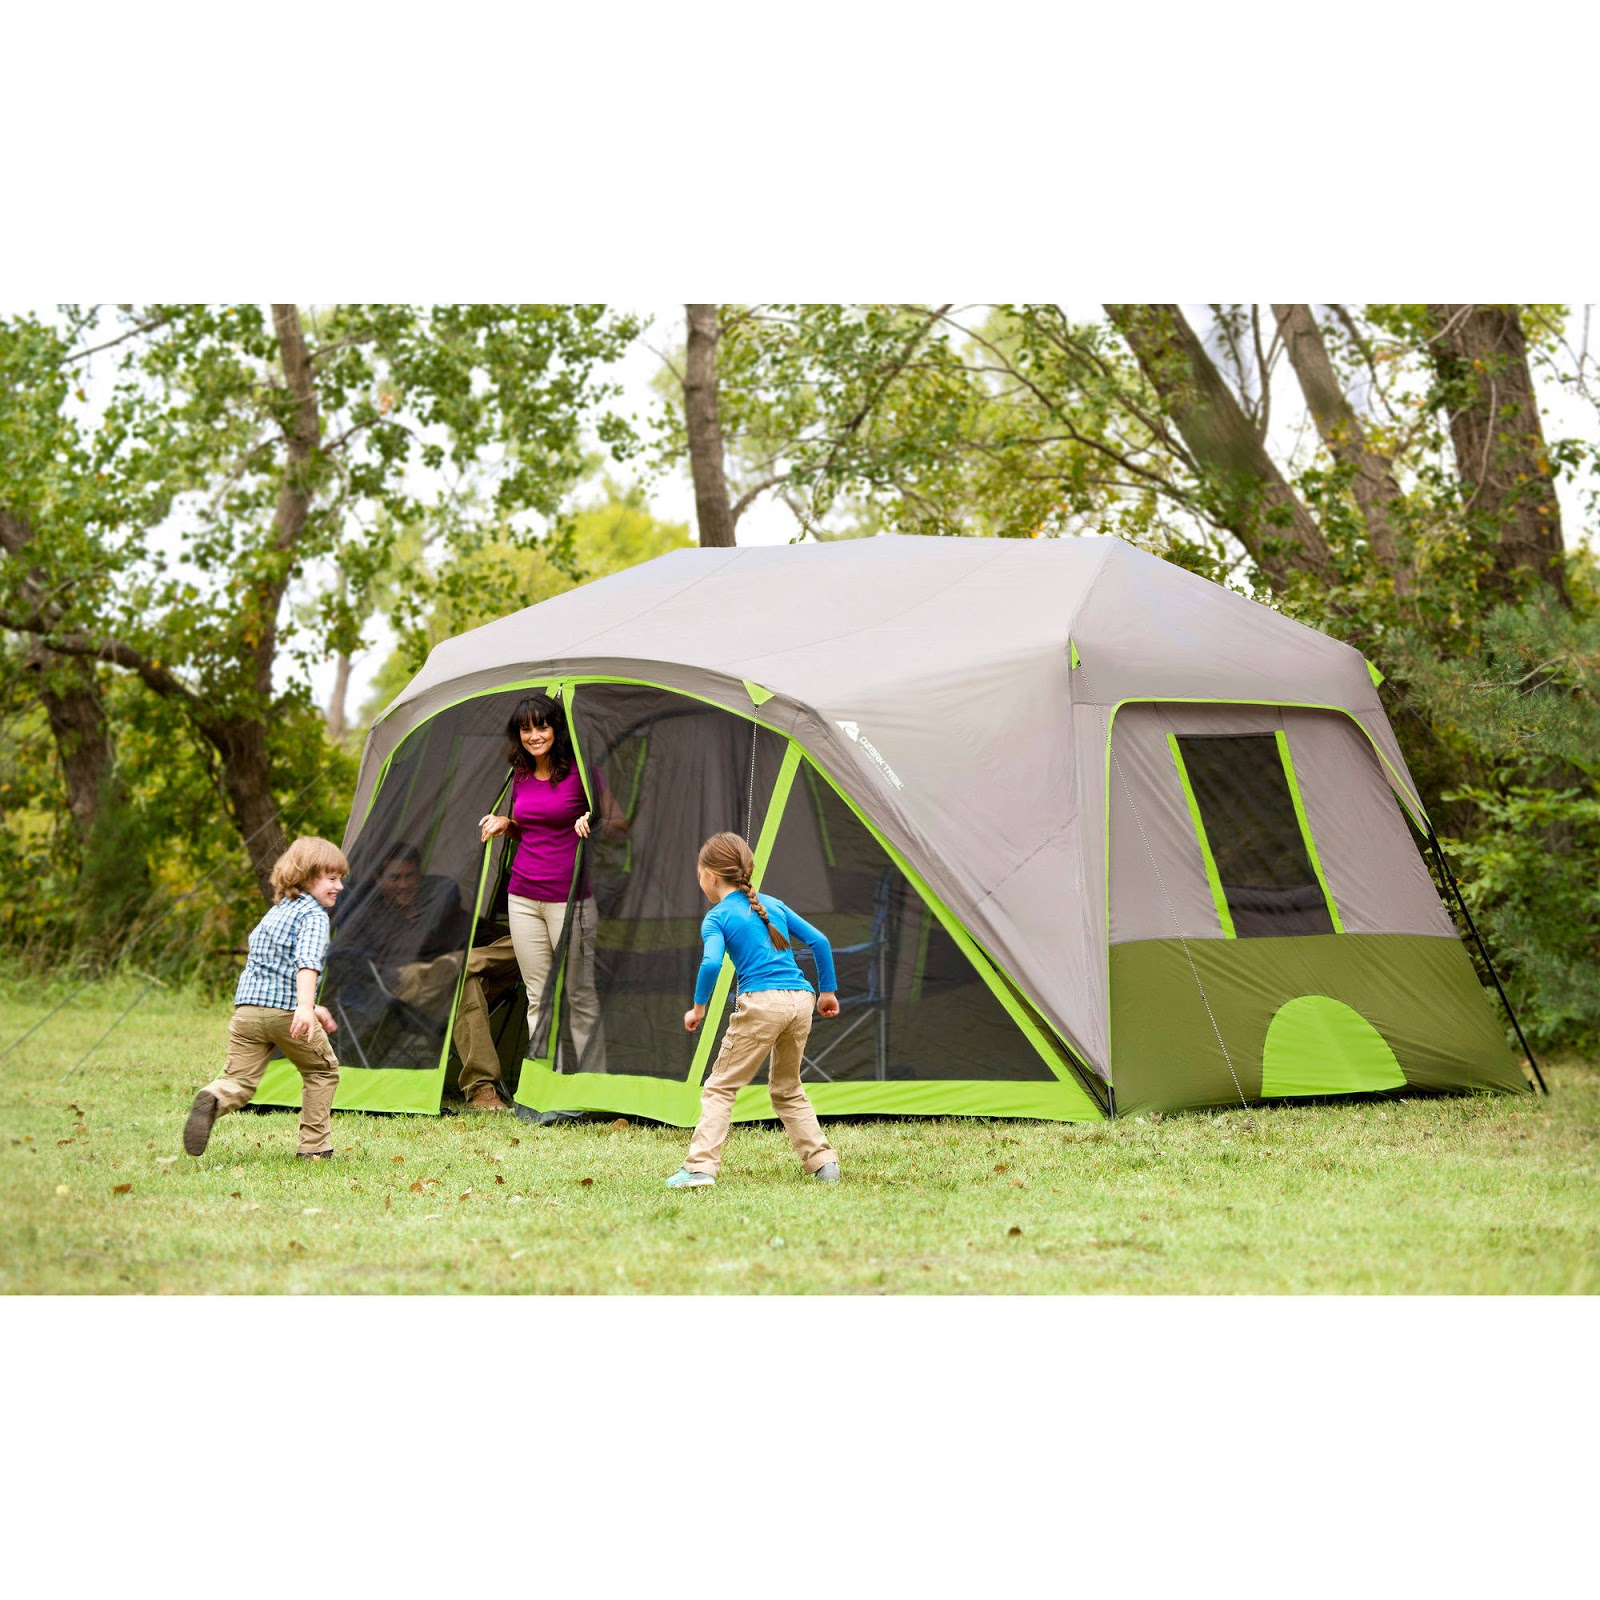 Ozark Trail 9 Person Camping Tent Dome 2 Rooms Cabin Tent